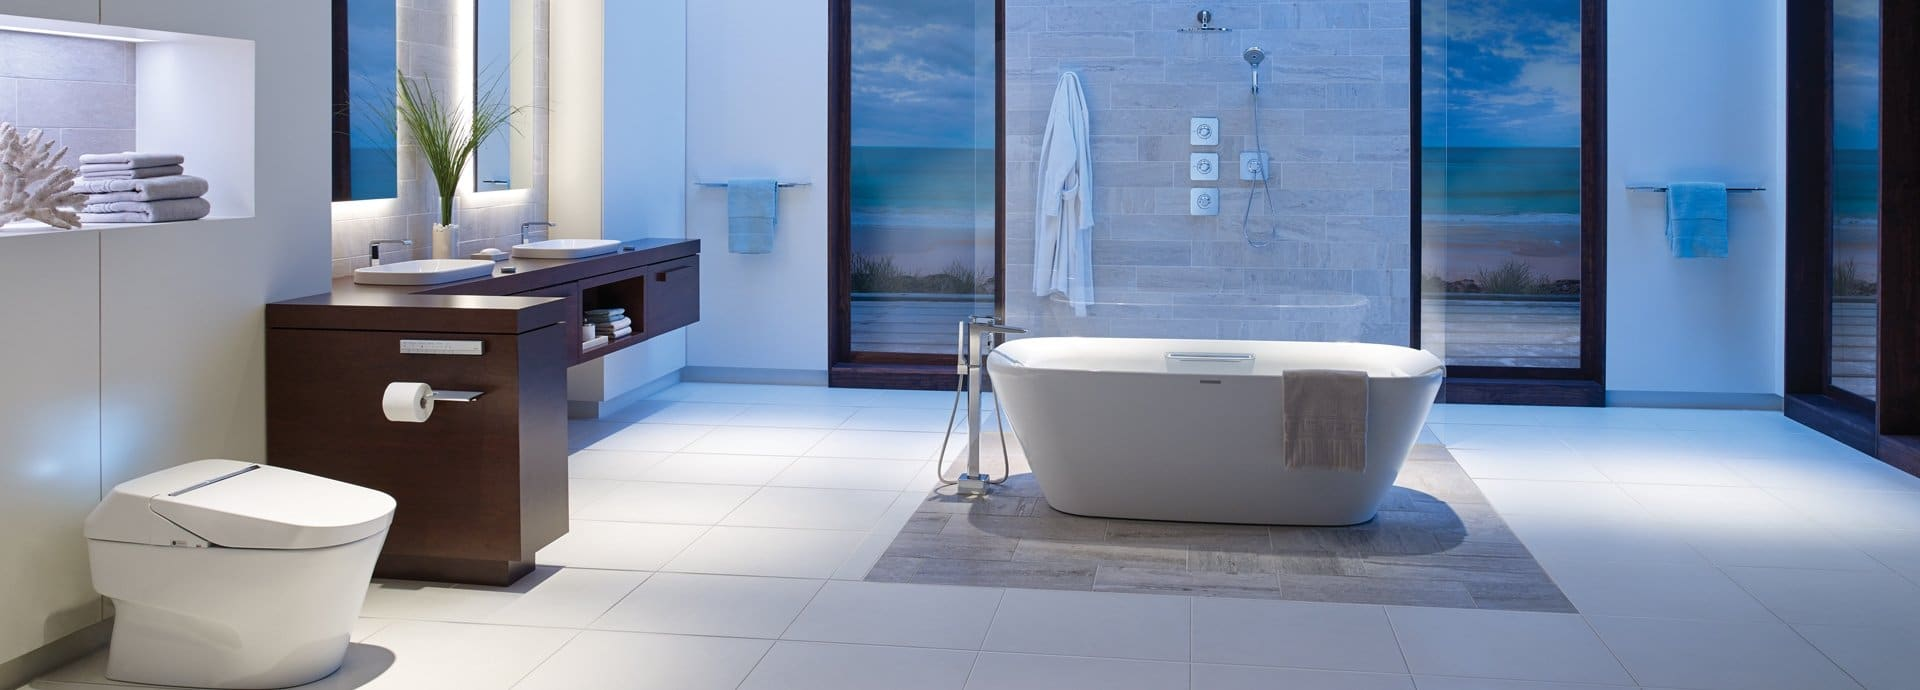 How to Remodel a Bathroom – Tips and Tricks You Need to Keep in Mind